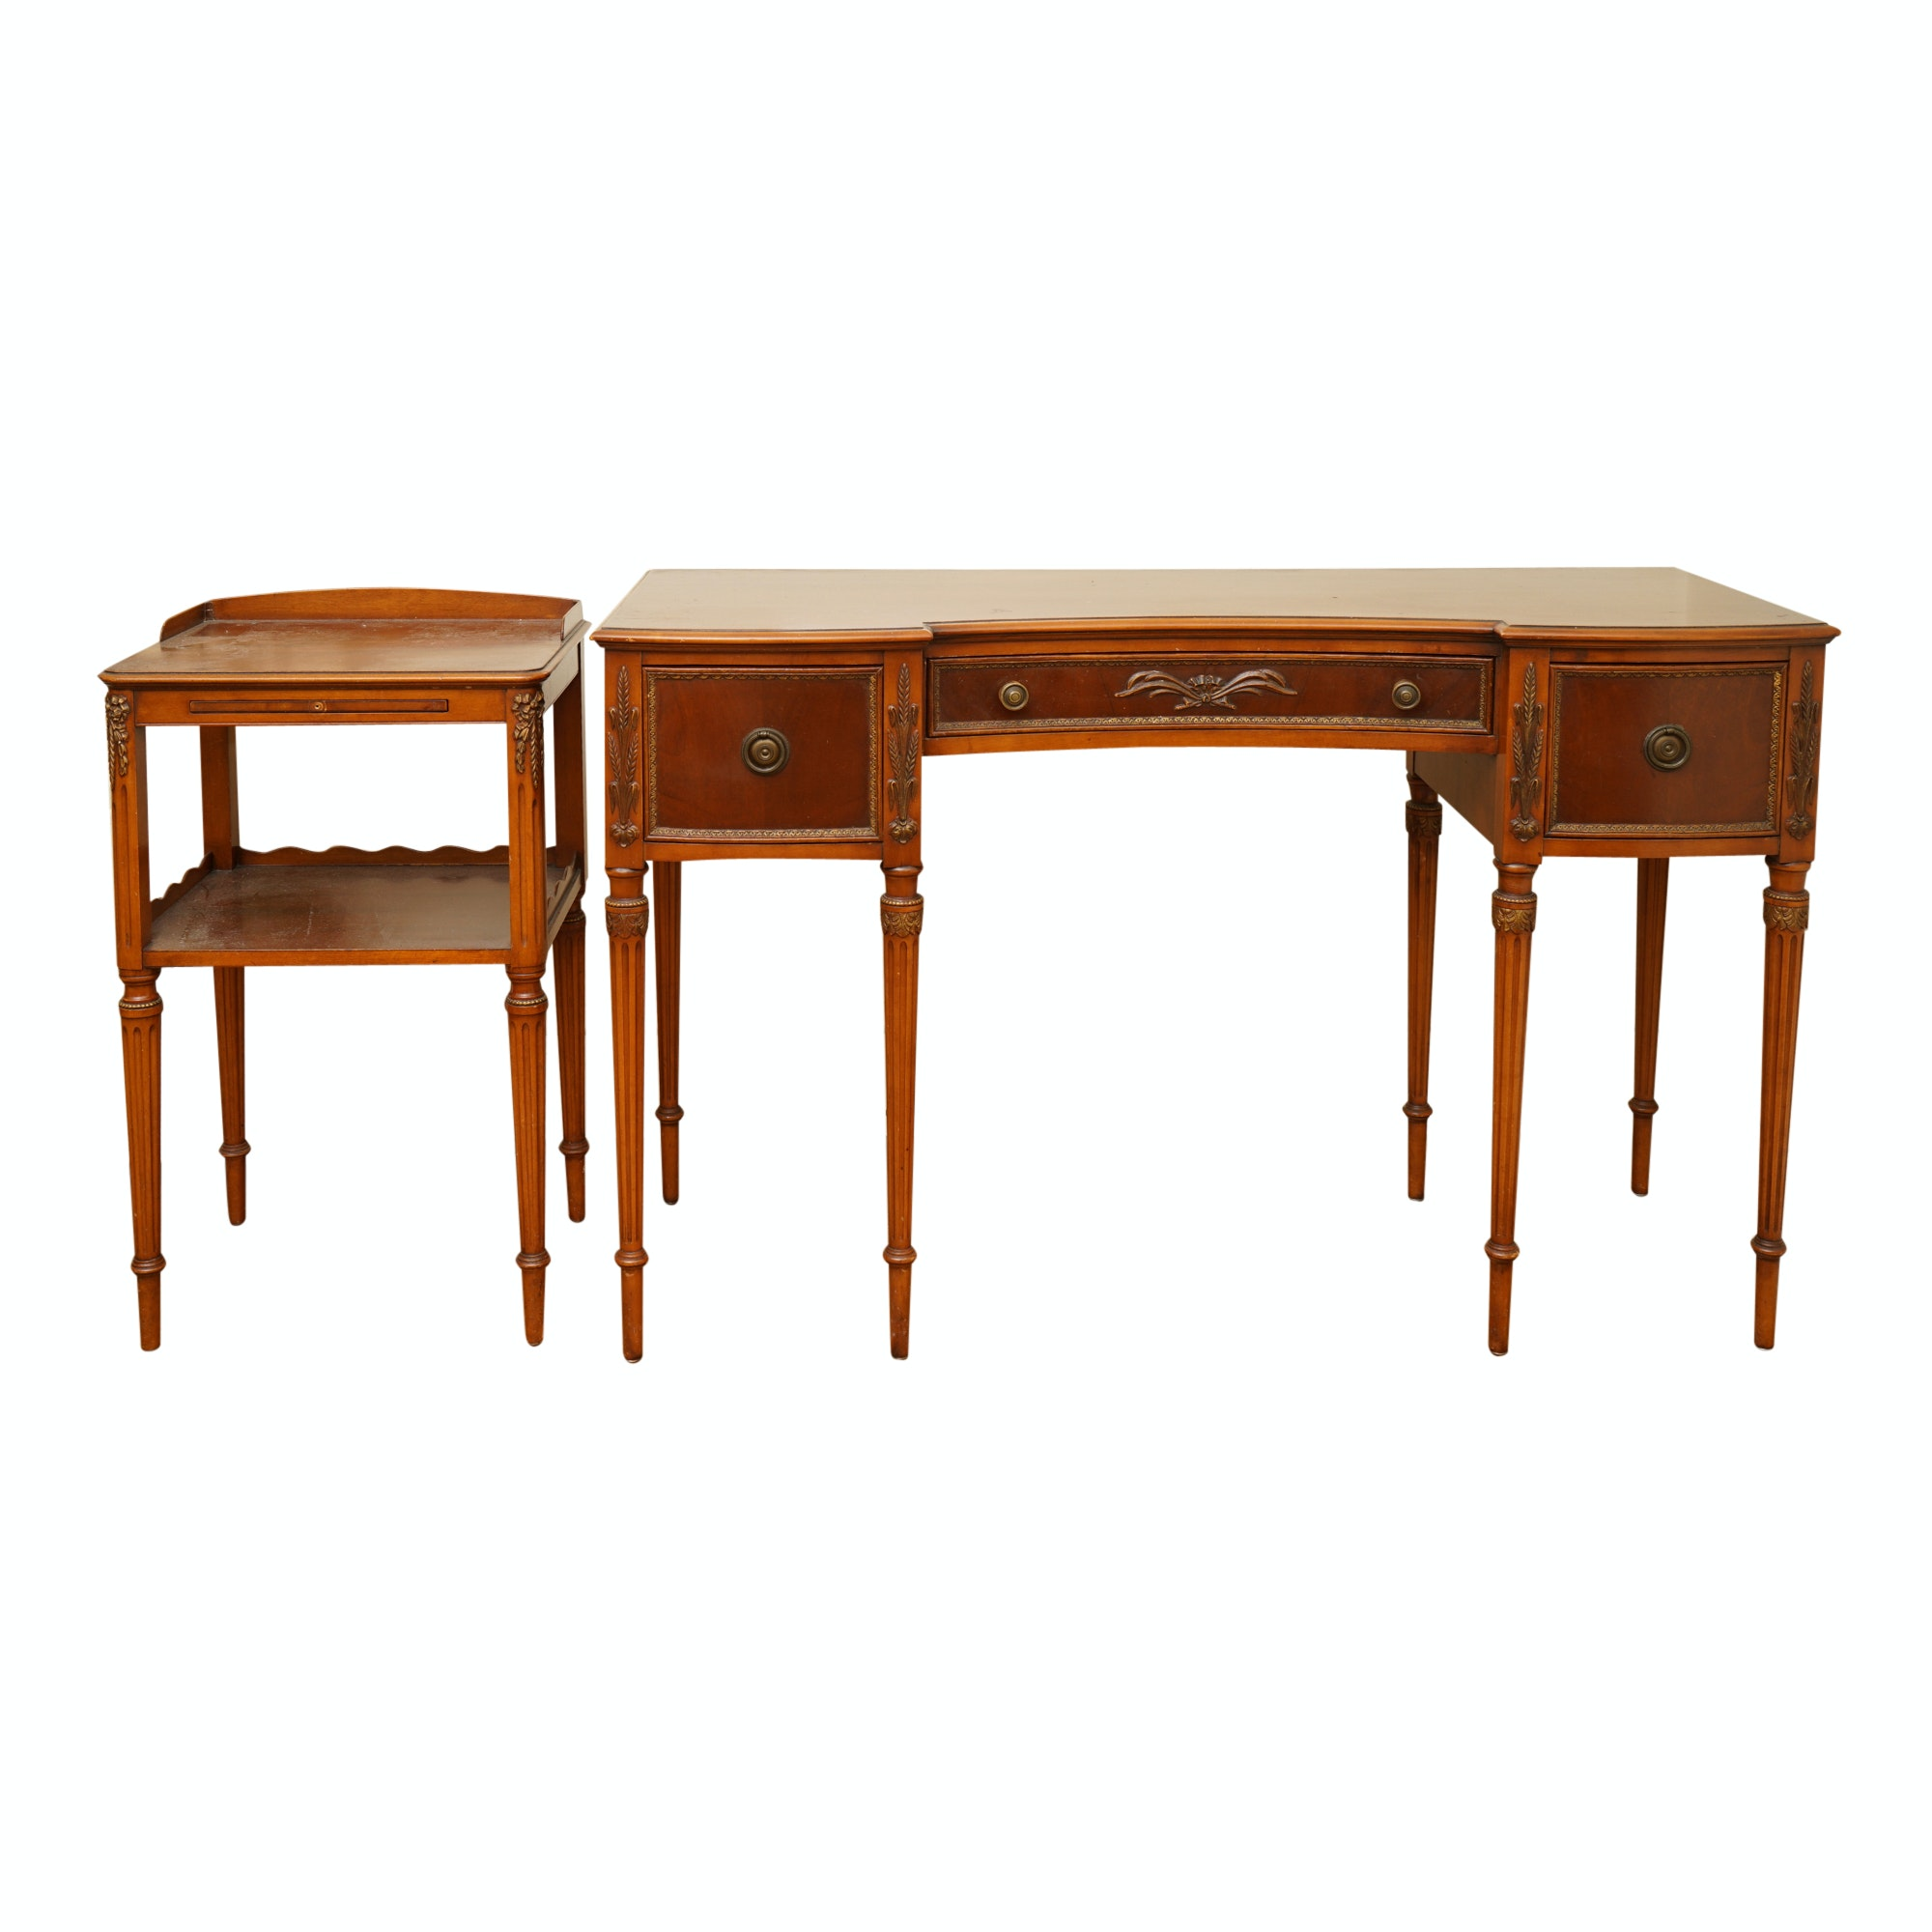 Vintage Louis XVI Style Mahogany Desk and Accent Table by Paine Furniture Co.